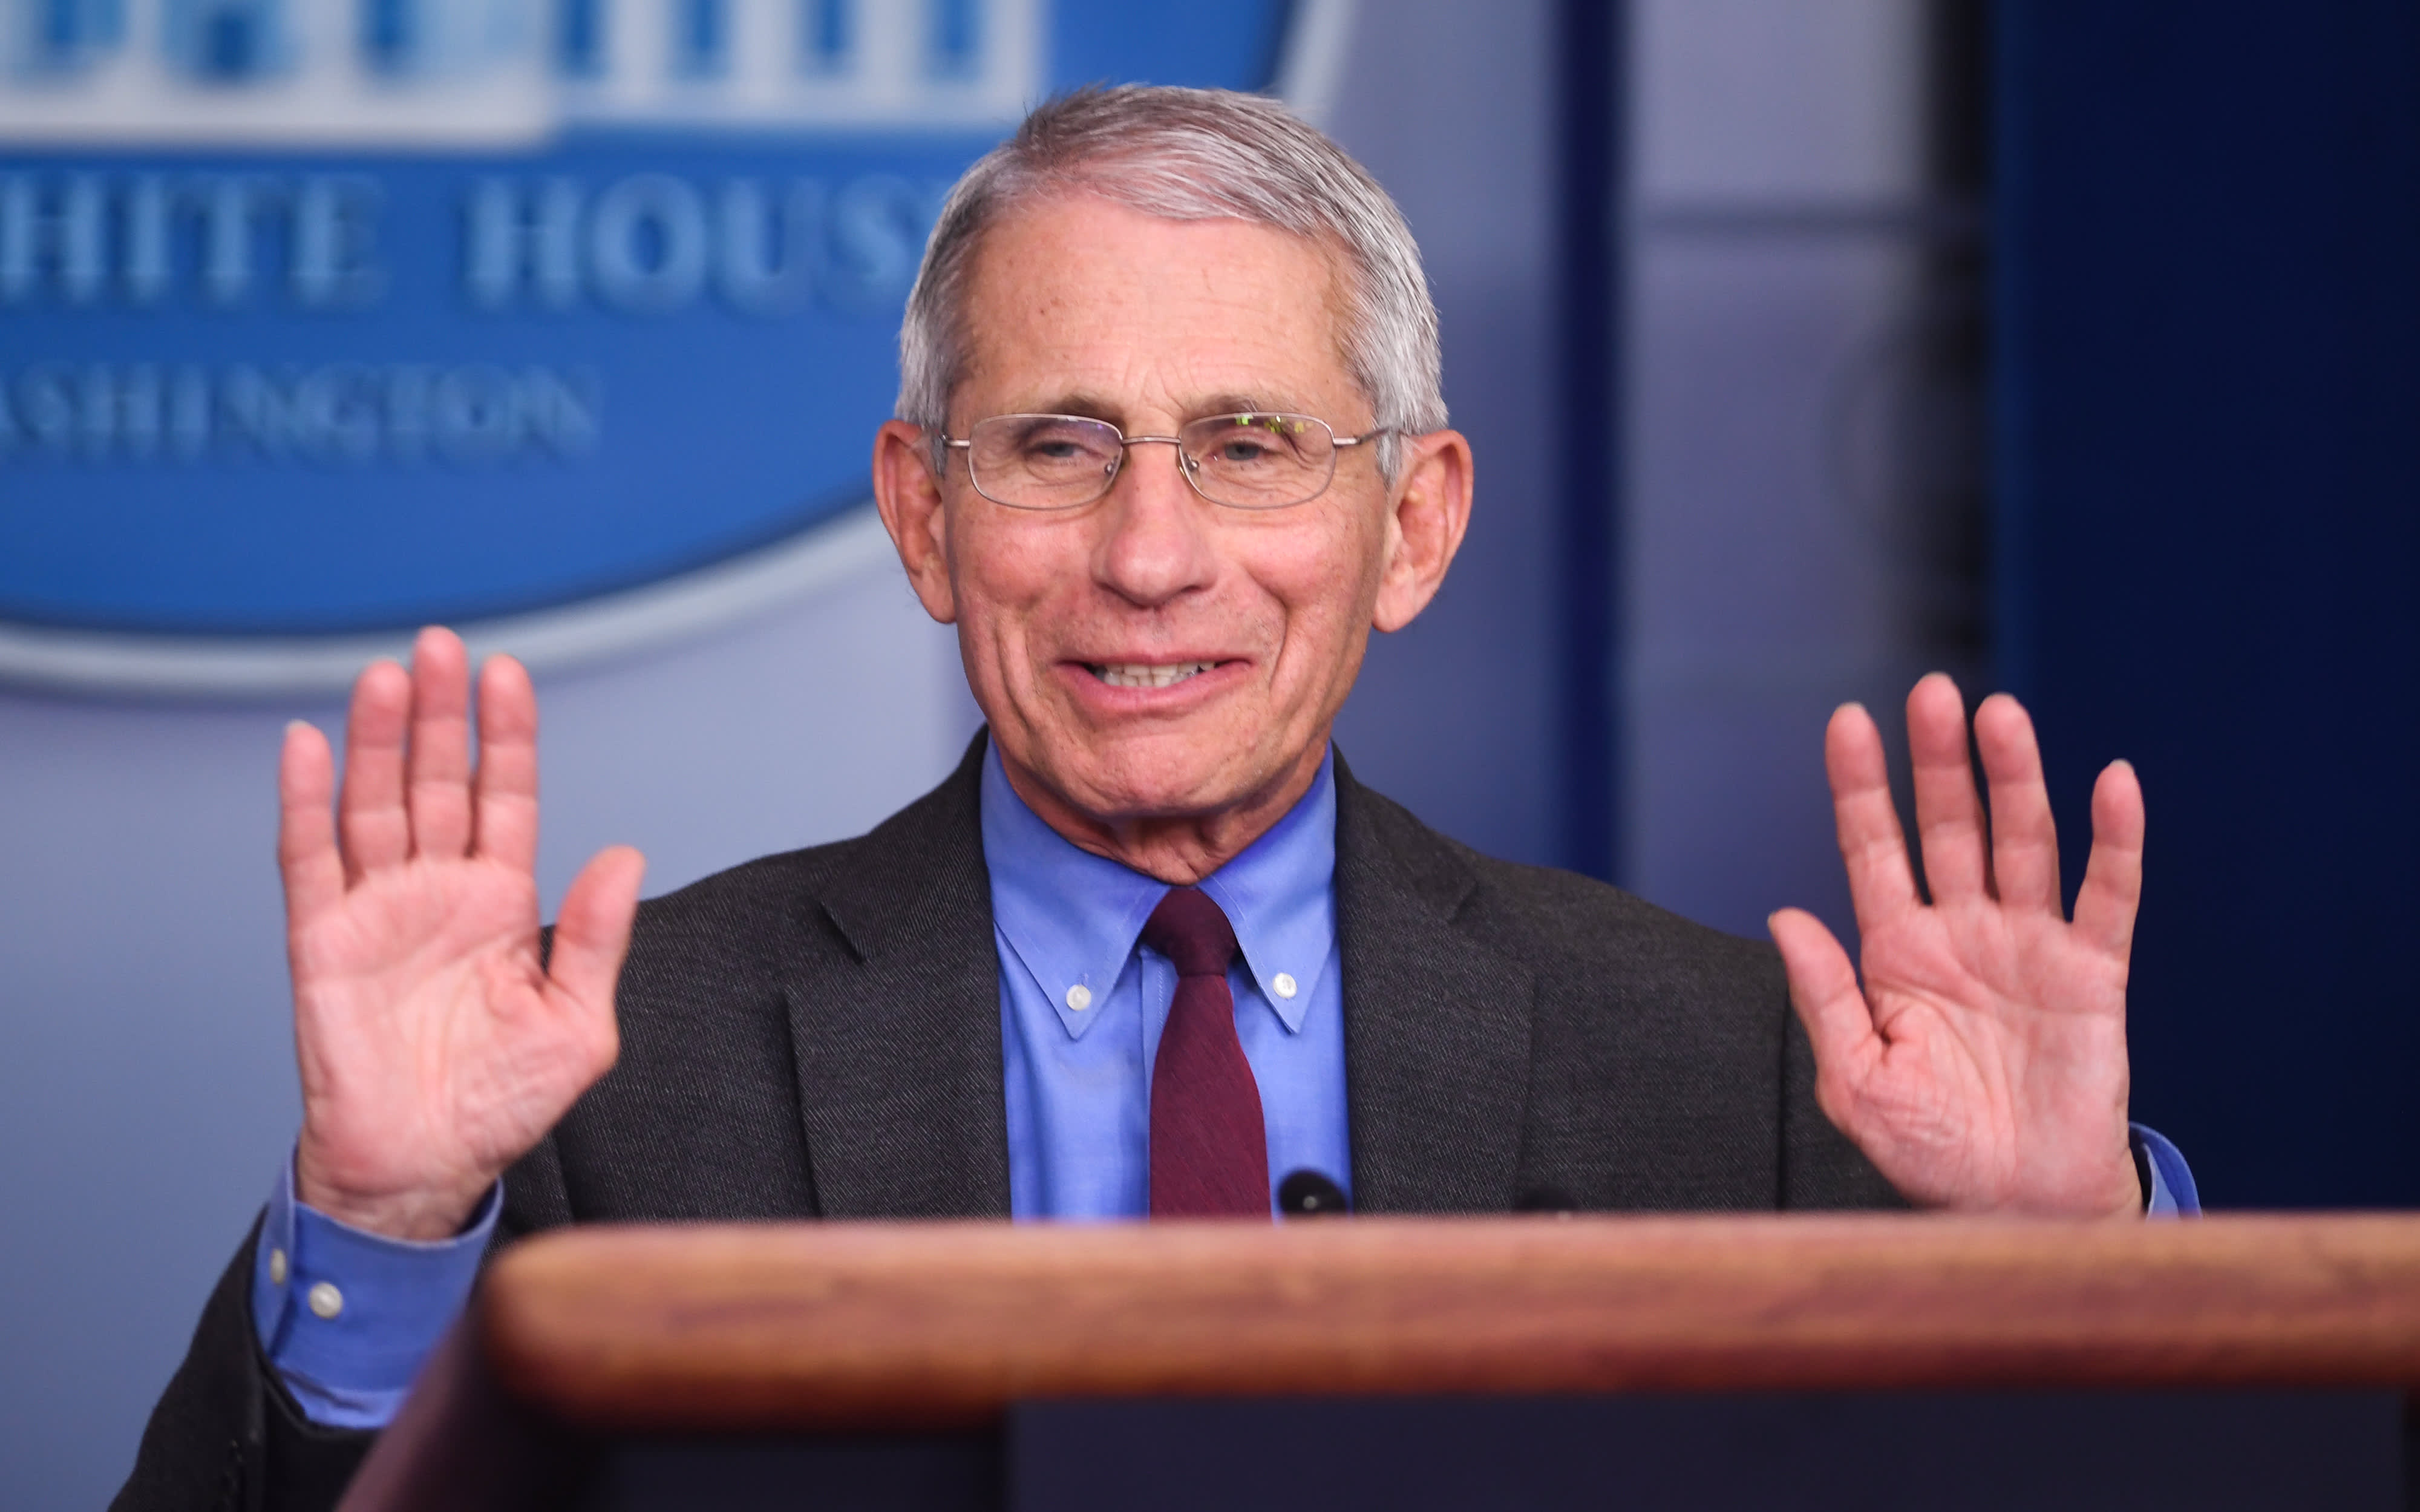 White House advisor Anthony Fauci on keeping up with Covid-19 news